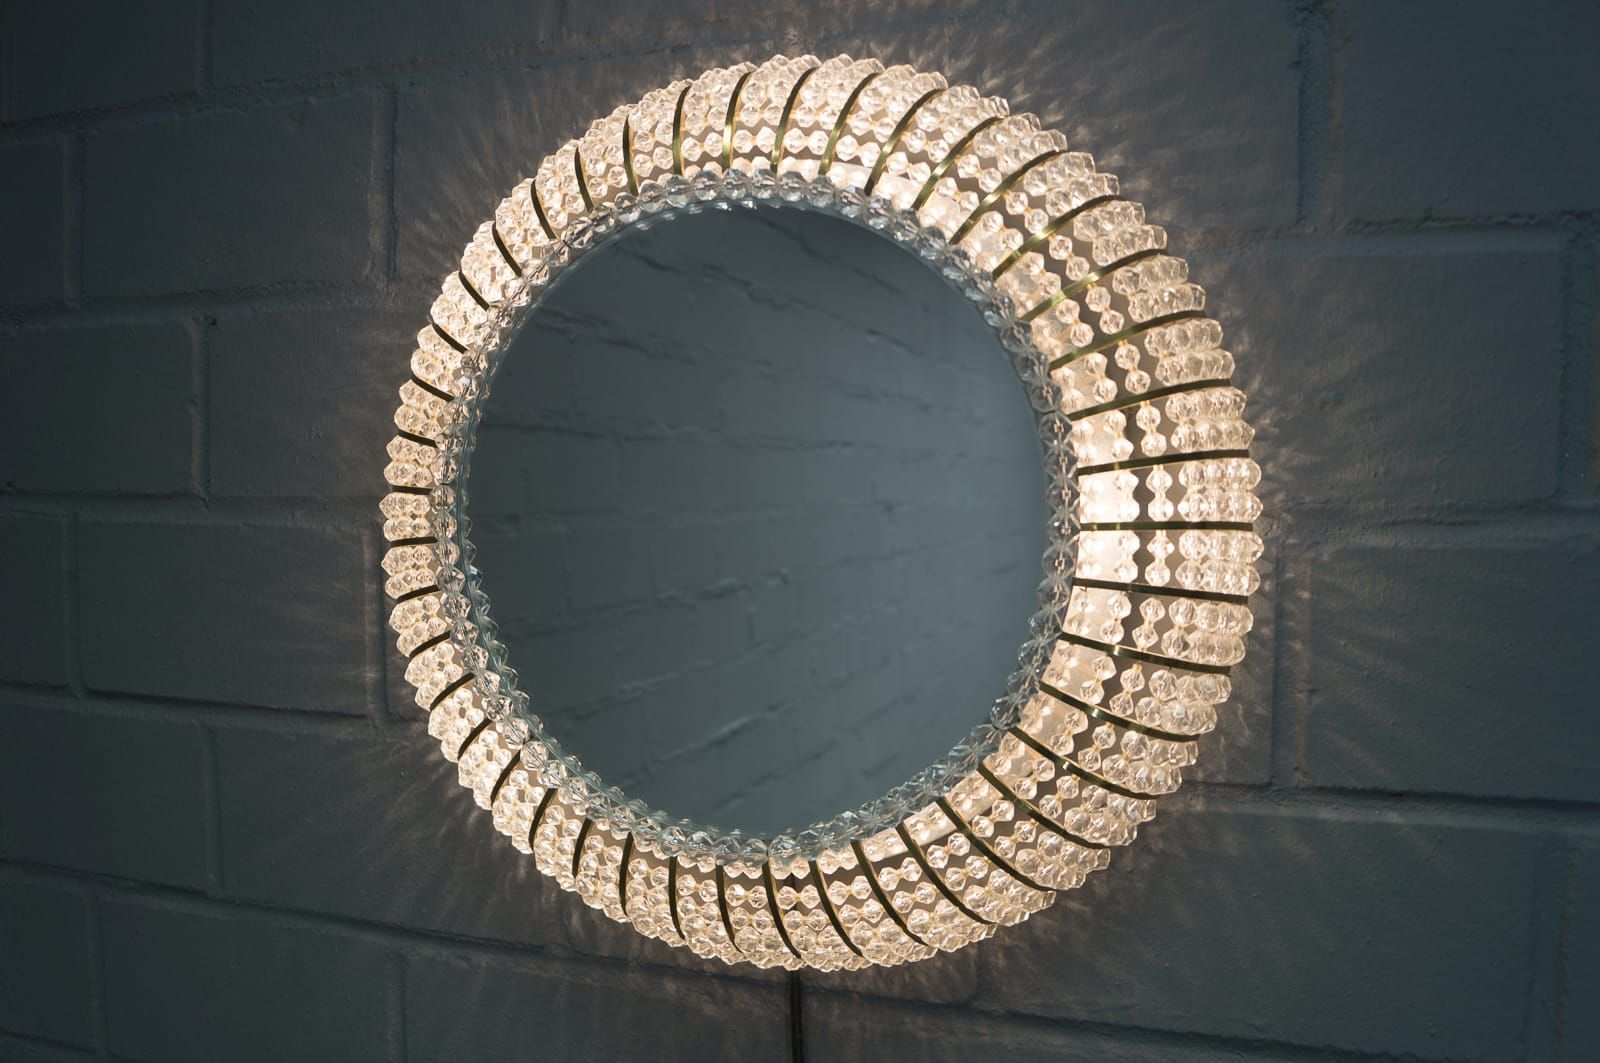 Neoteric Crystal Wall Mirror Glitz Floral Modern Rectangle With Regard To Sajish Oval Crystal Wall Mirrors (View 16 of 20)